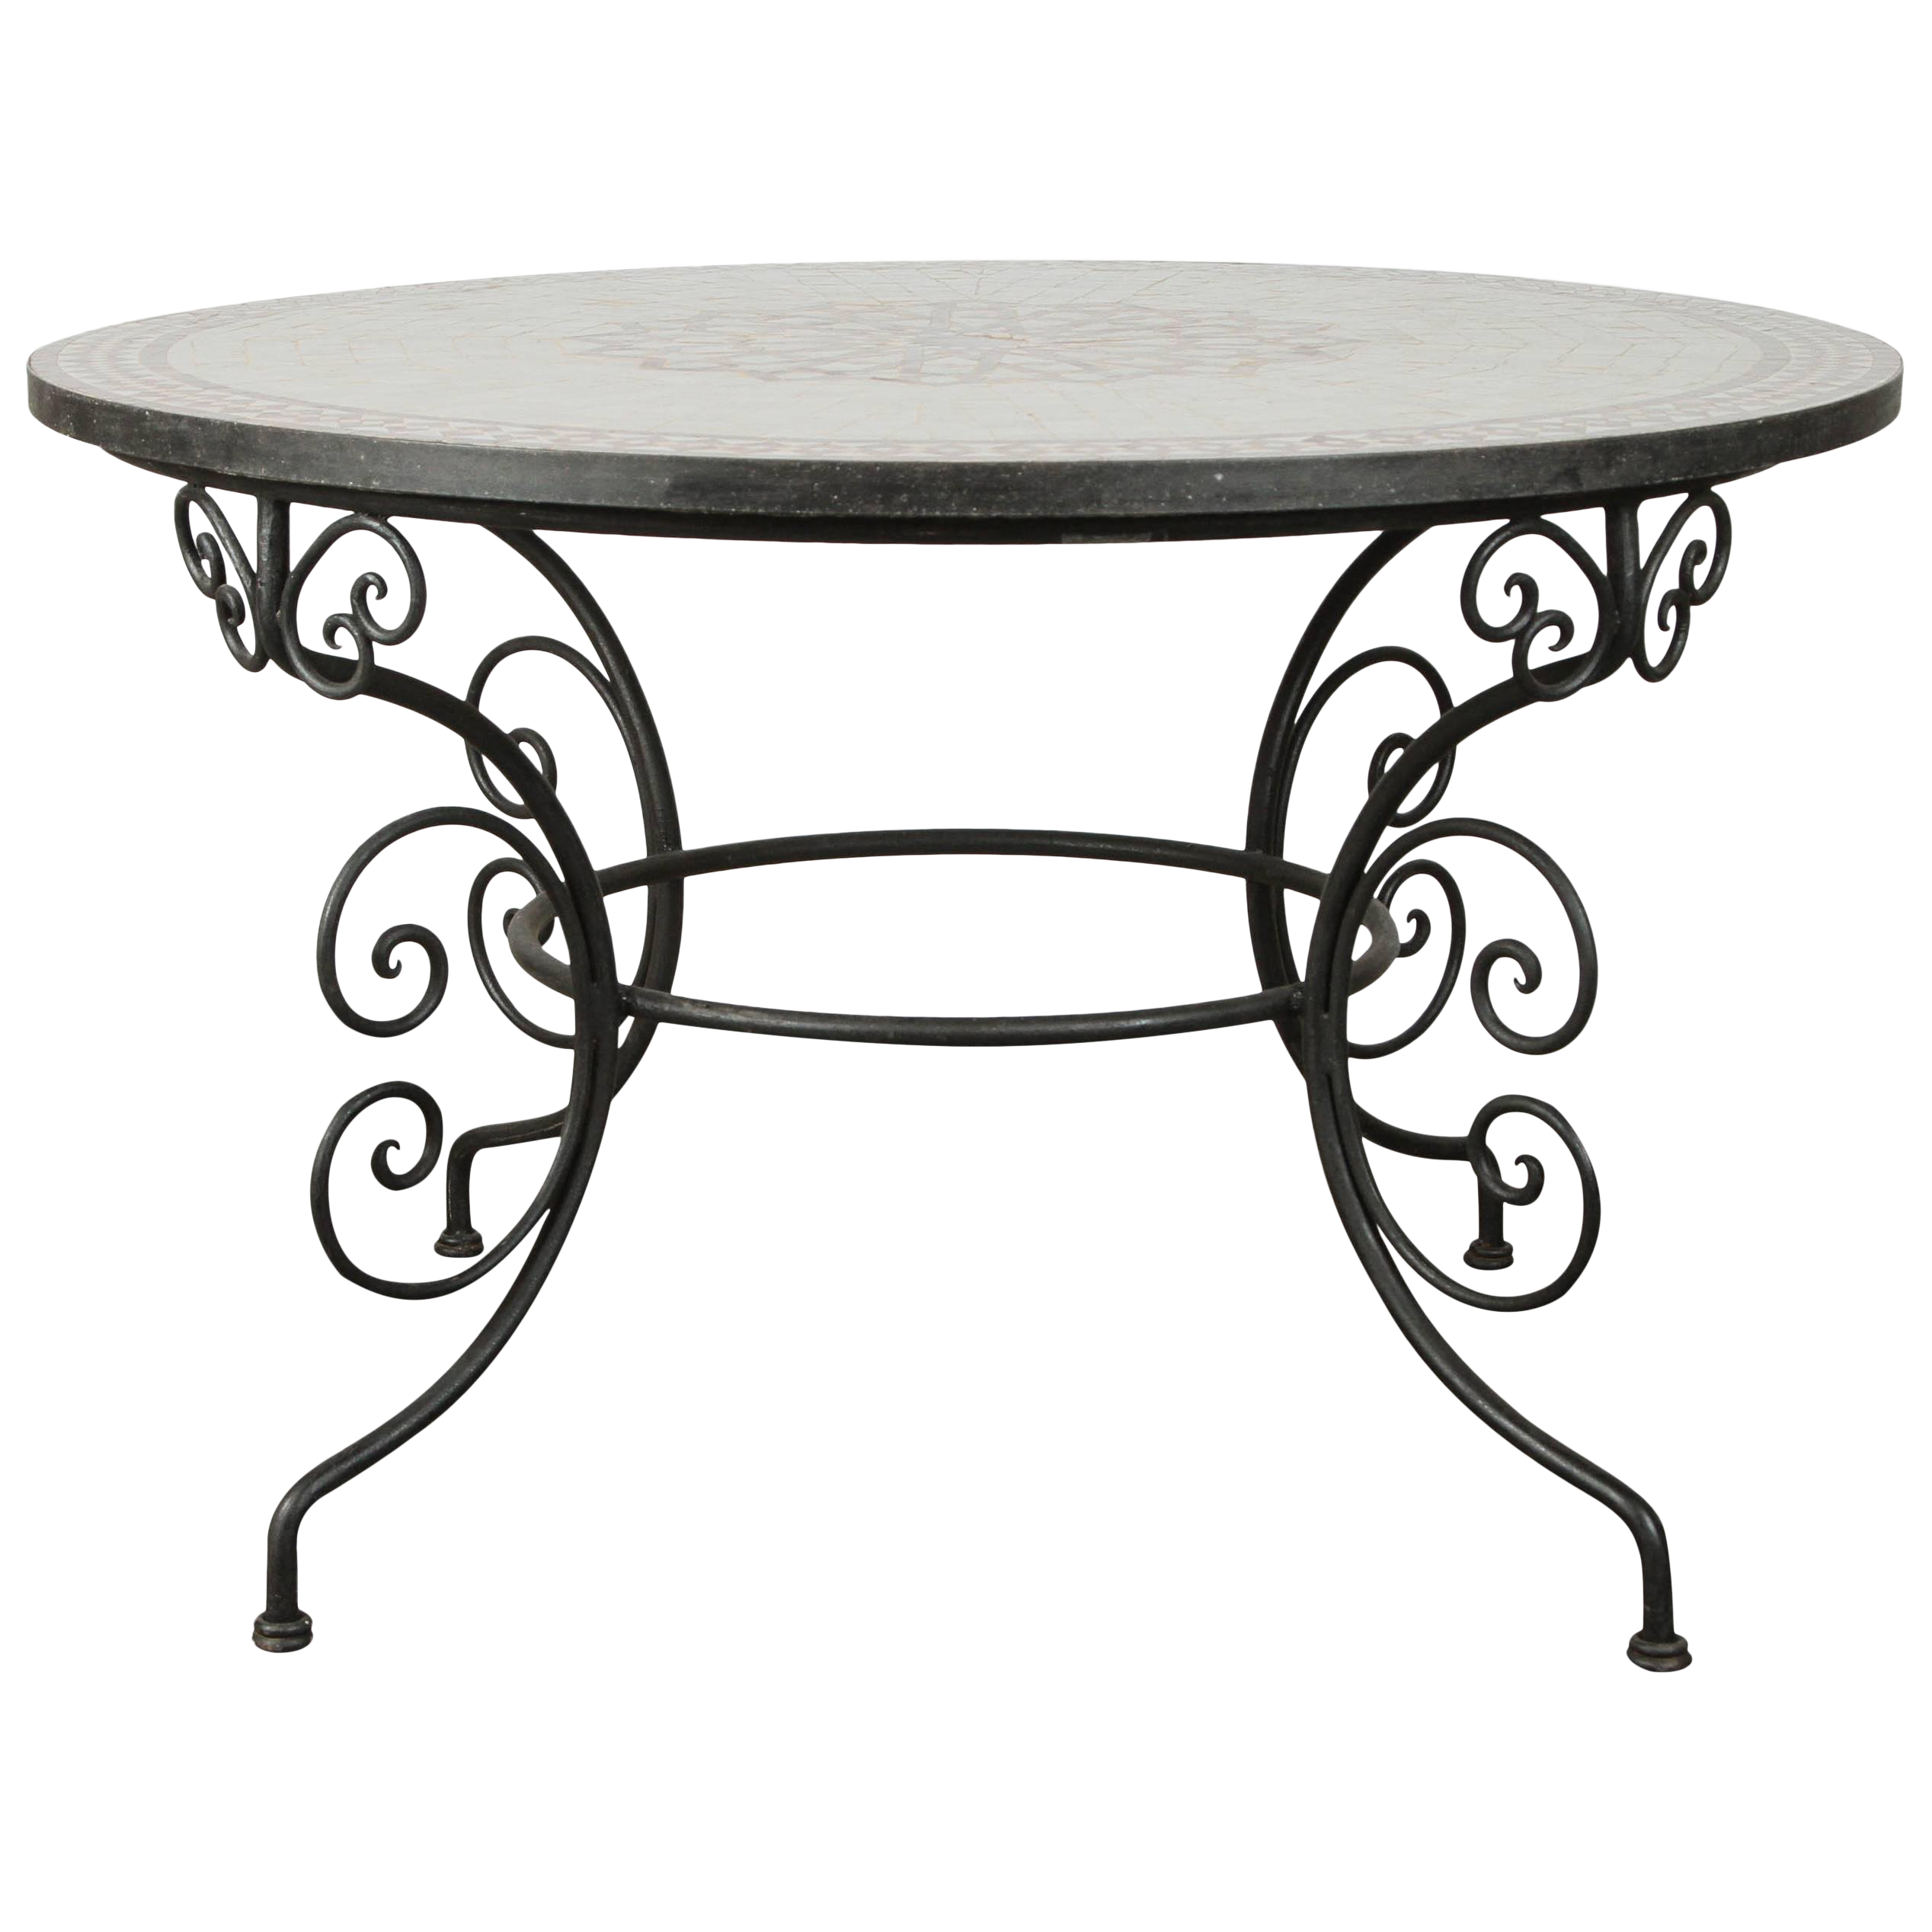 Superior Moroccan Outdoor Round Mosaic Tile Dining Table On Iron Base 47  In. | DECASO